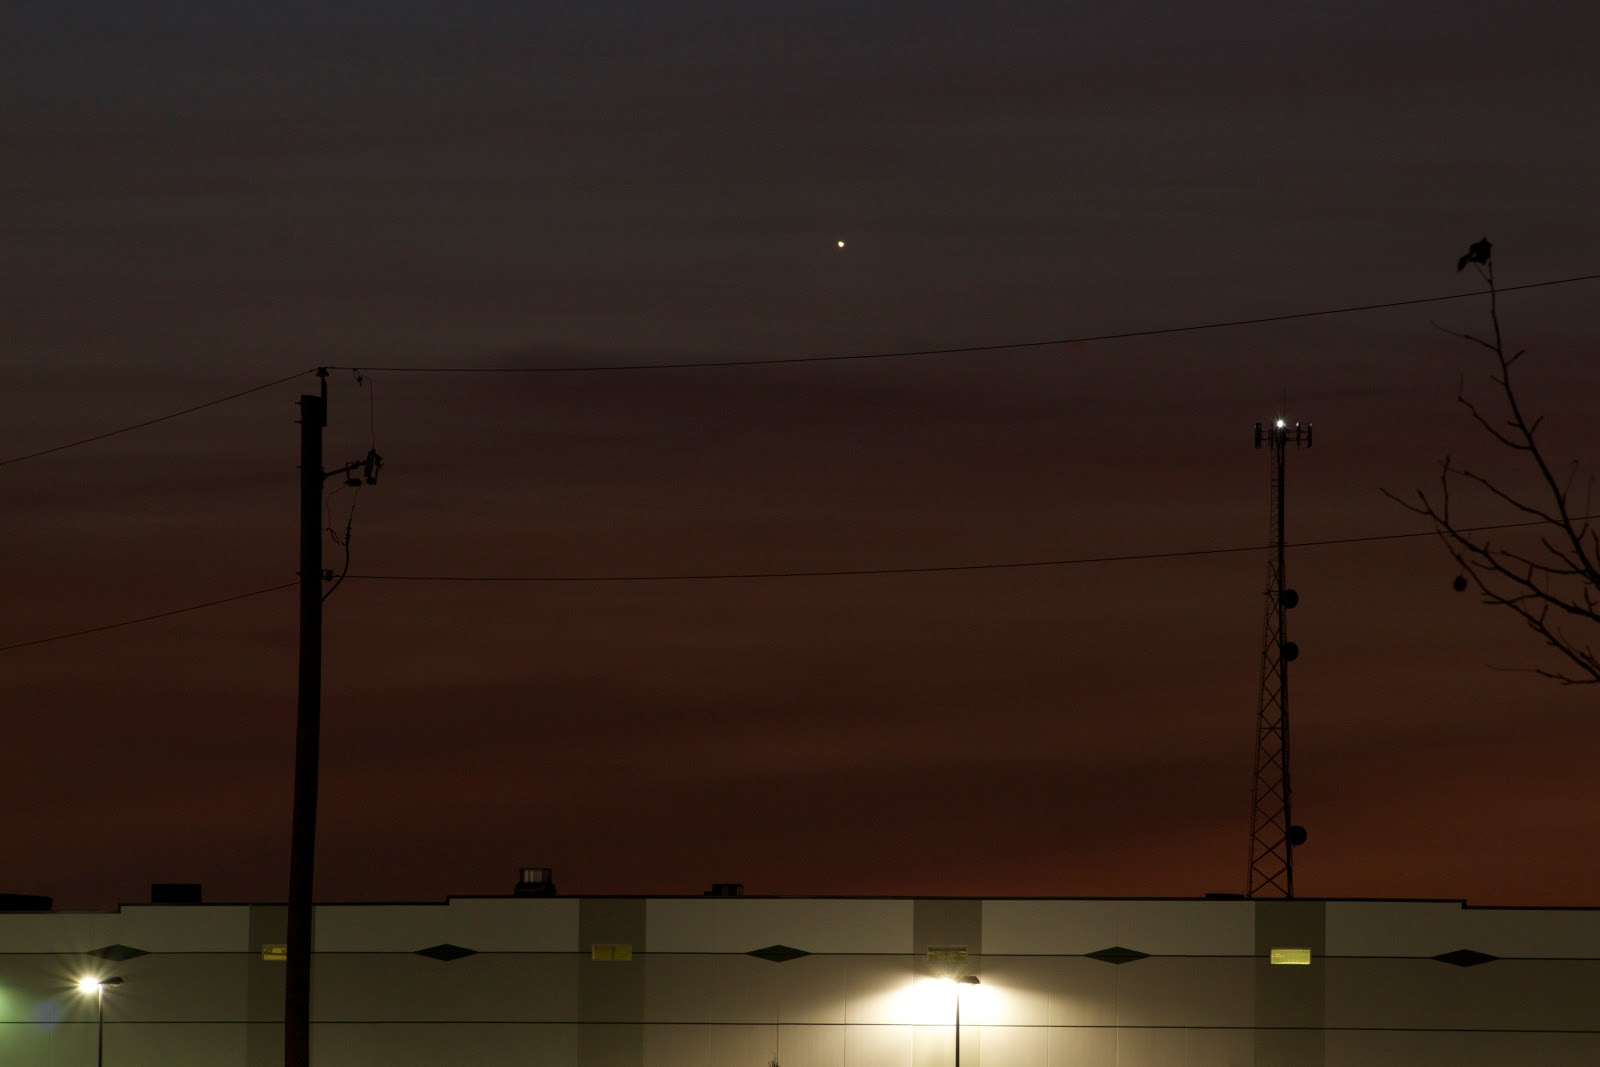 venus rising january 20